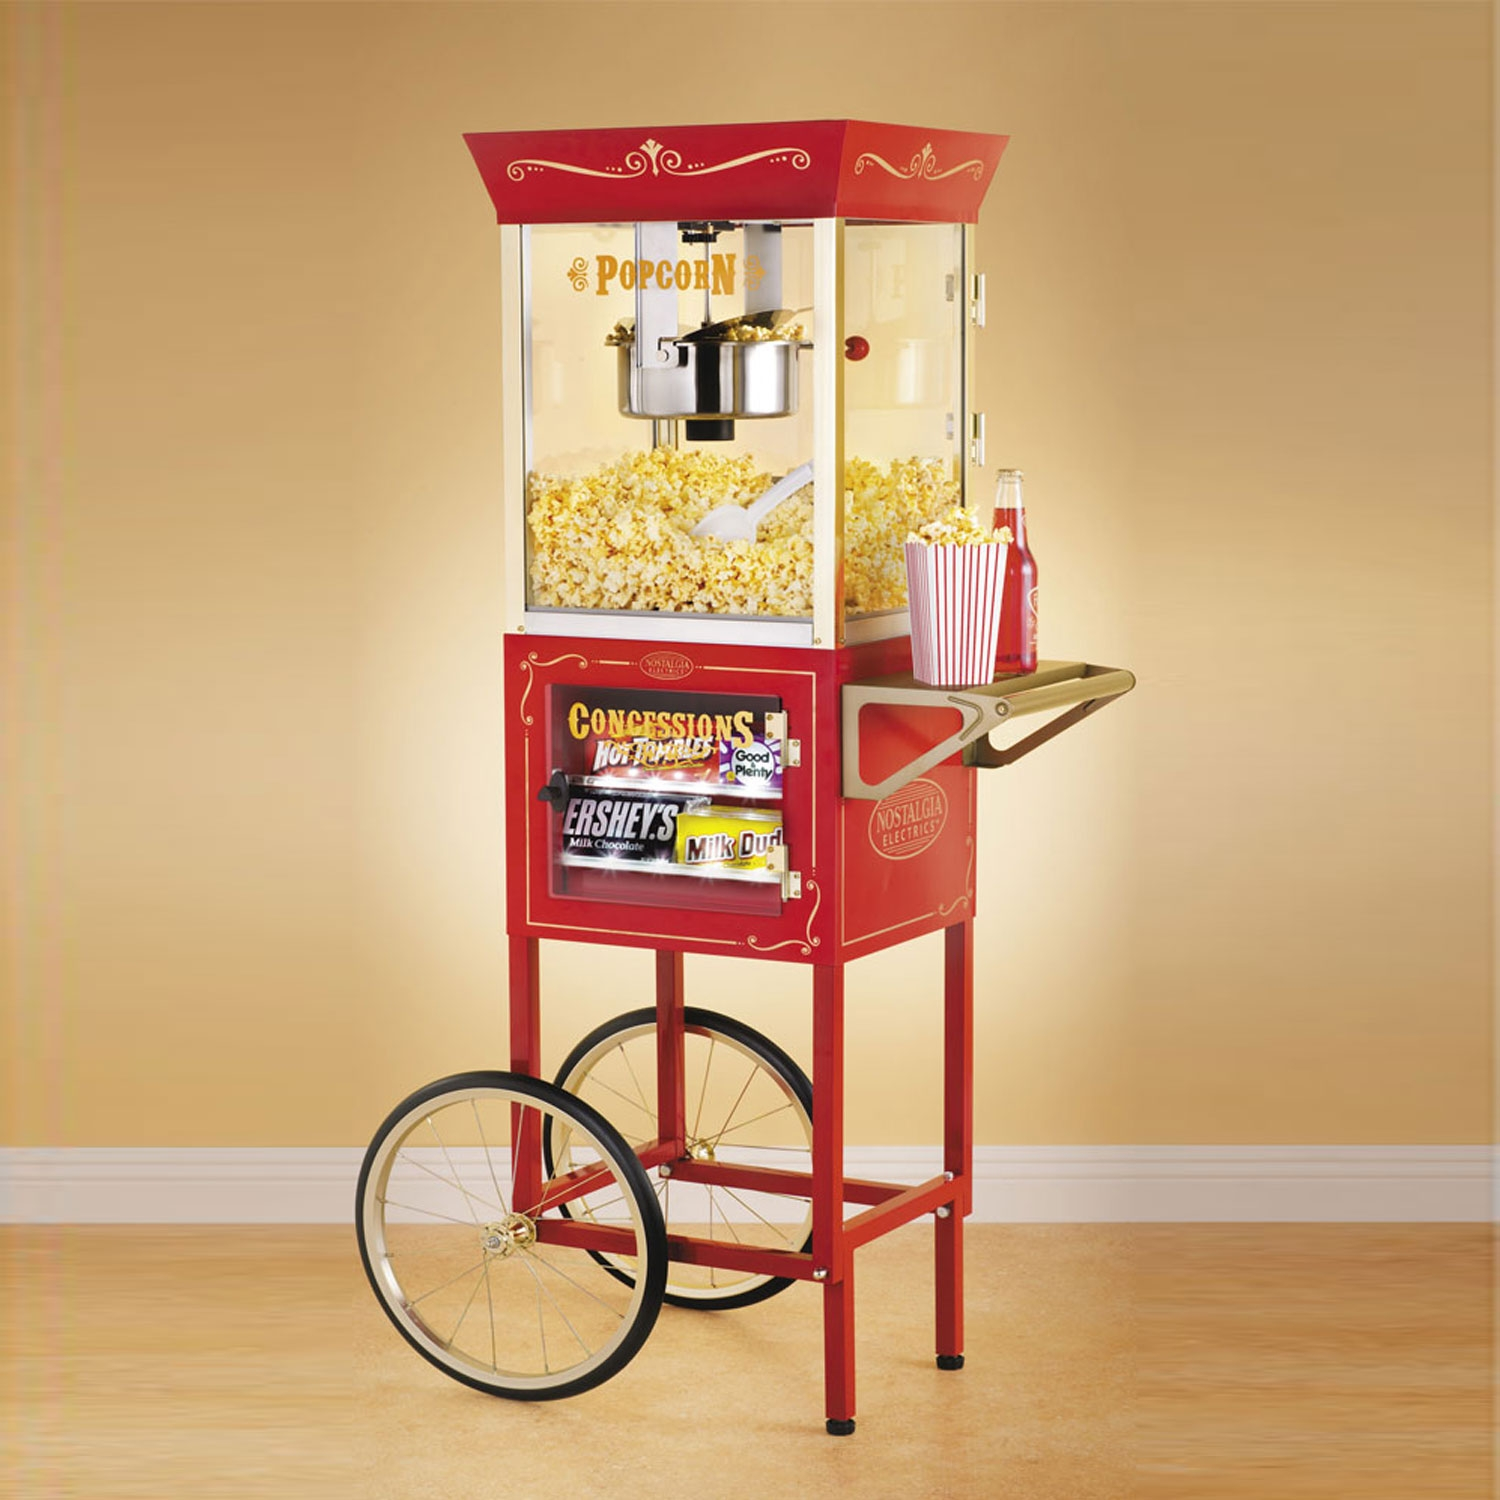 Christmas Trees and Lights Old Fashioned Movie Time Popcorn Cart with Concession Stand